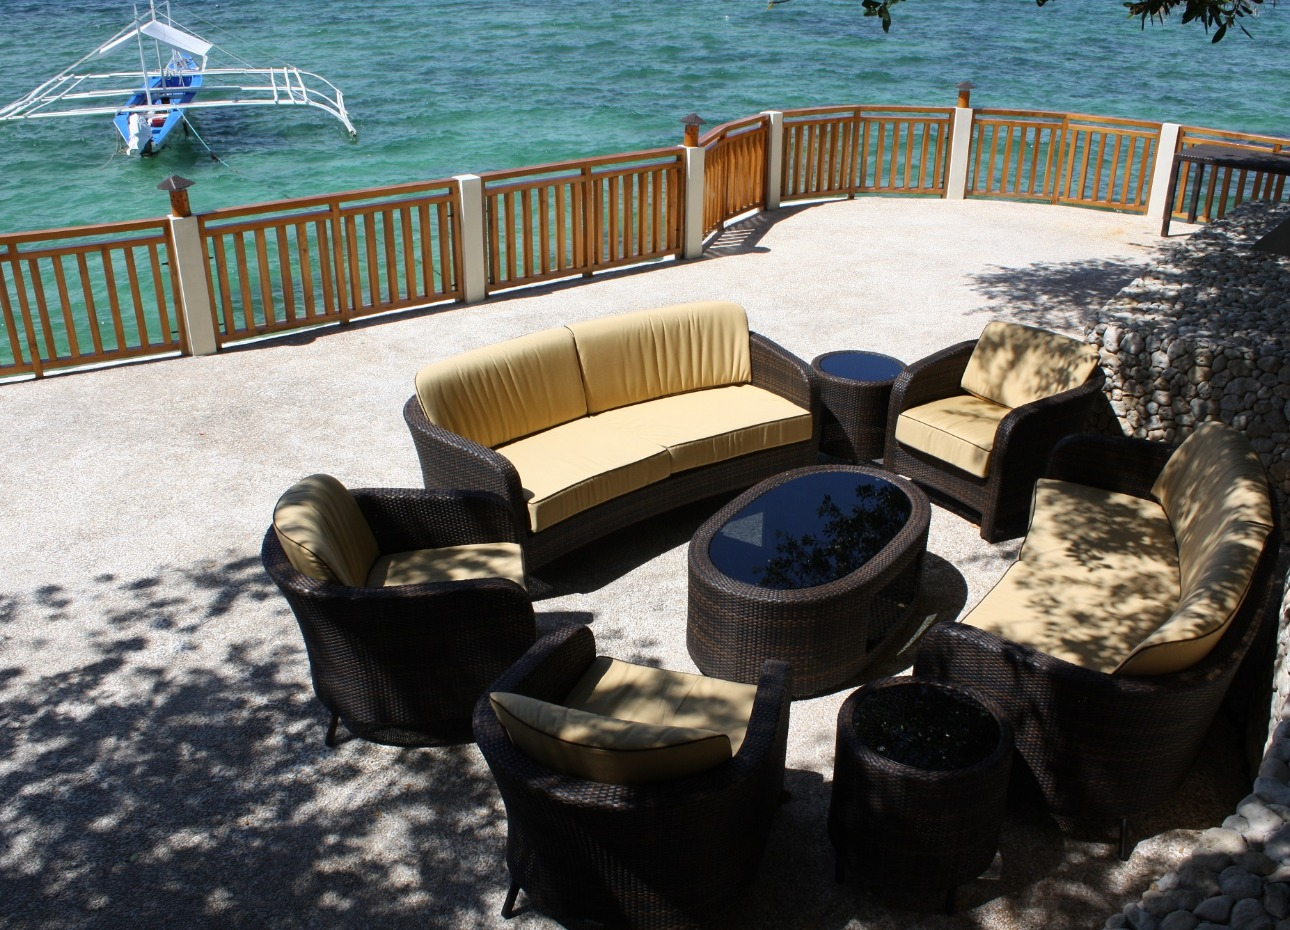 Philippines, Moalboal Magic Island, Dive Resort, Cottages, Seating, image